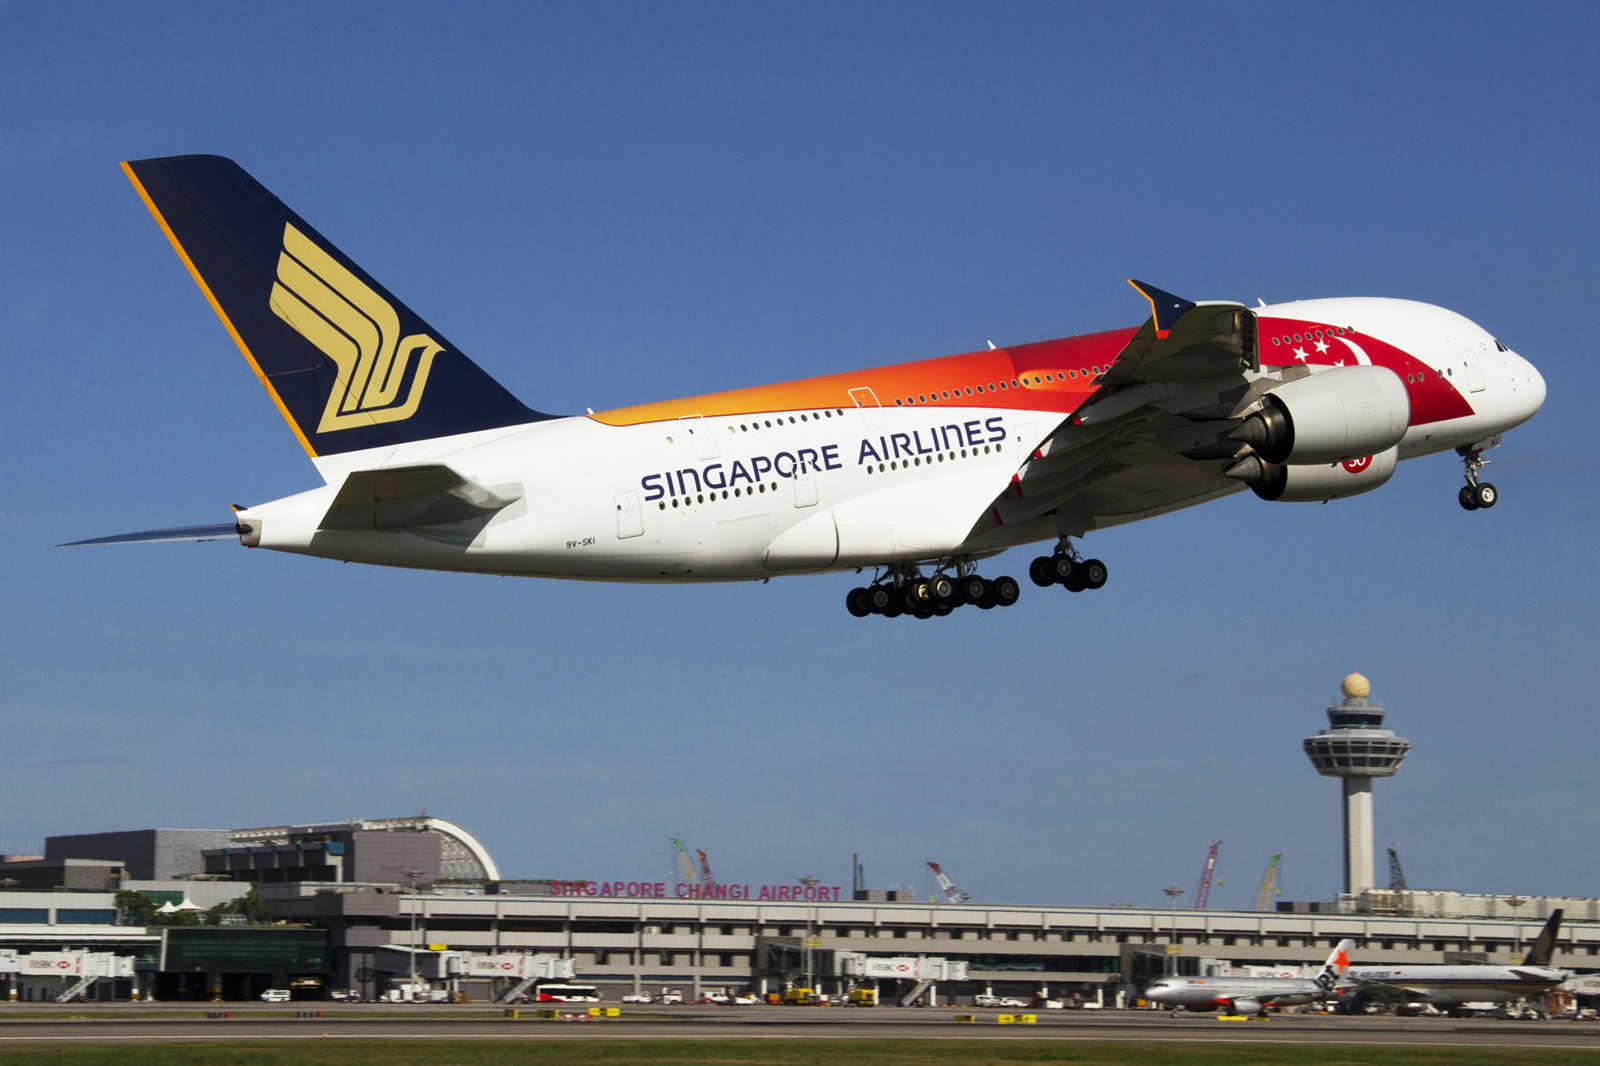 COVID-19 is helping Singapore Airlines get even stronger